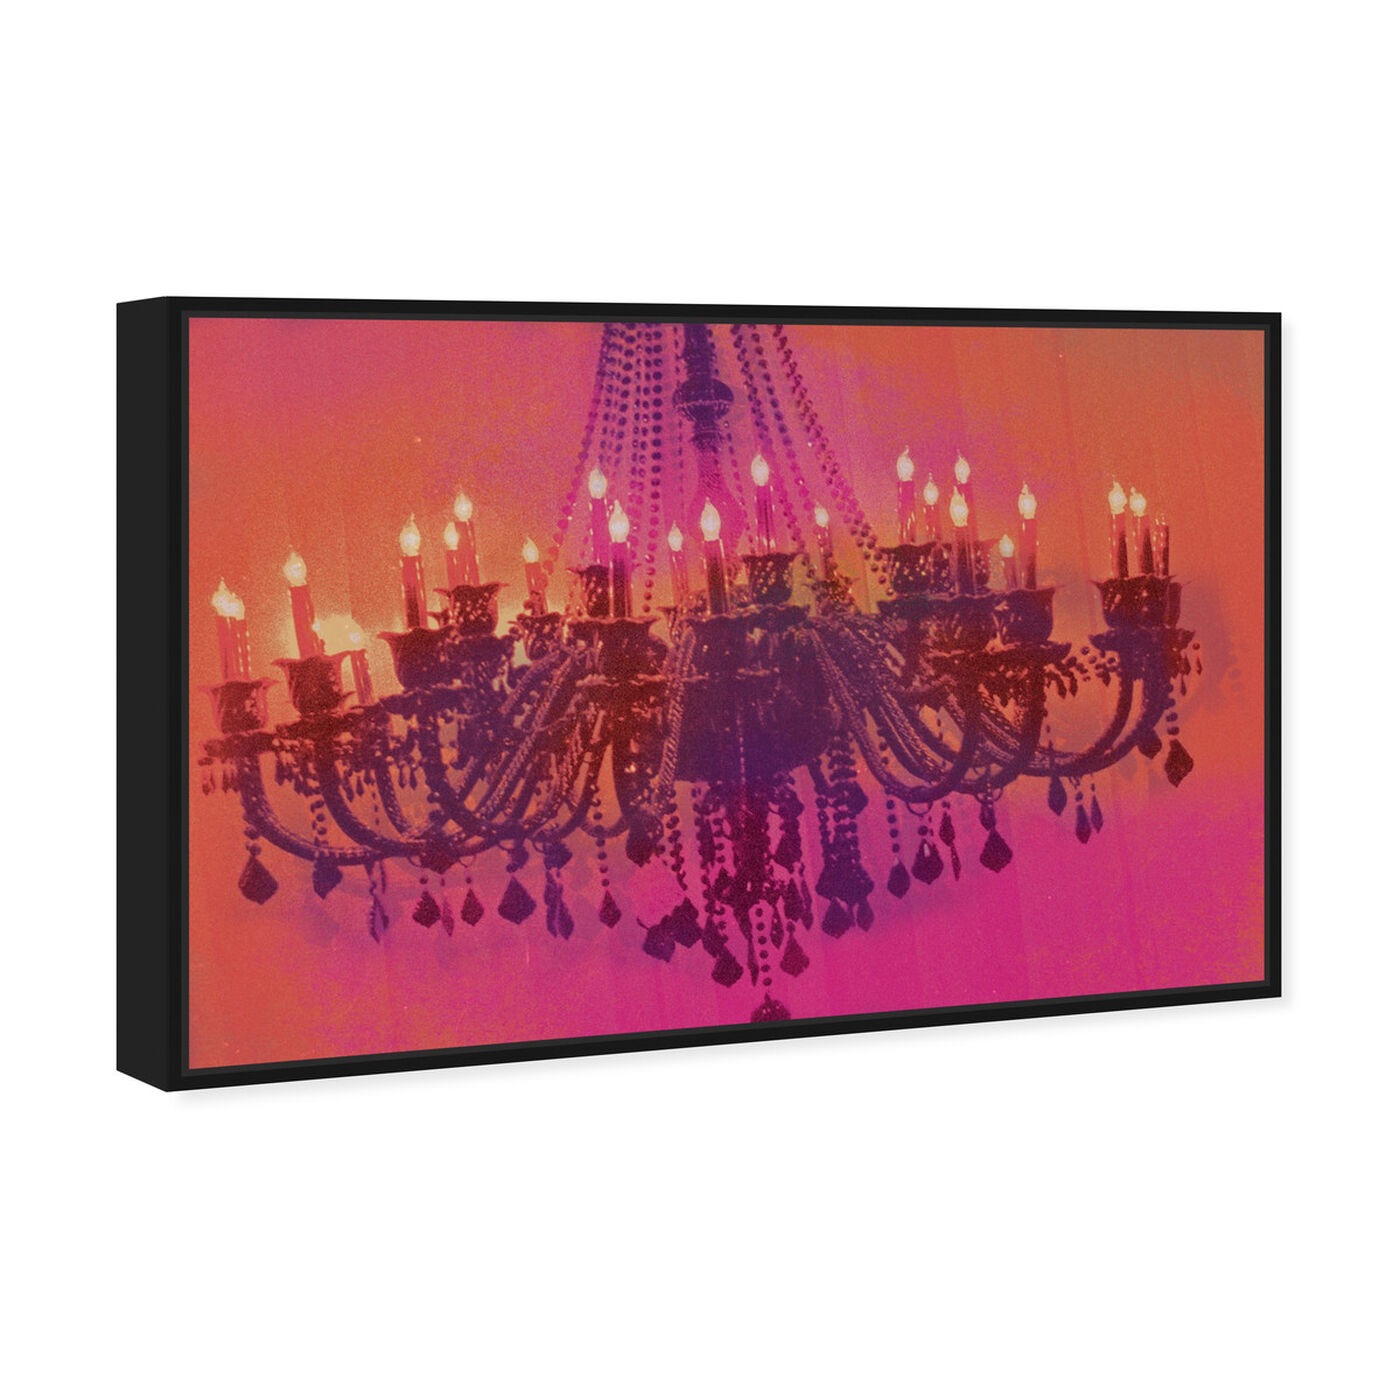 Angled view of Light me up featuring fashion and glam and chandeliers art.